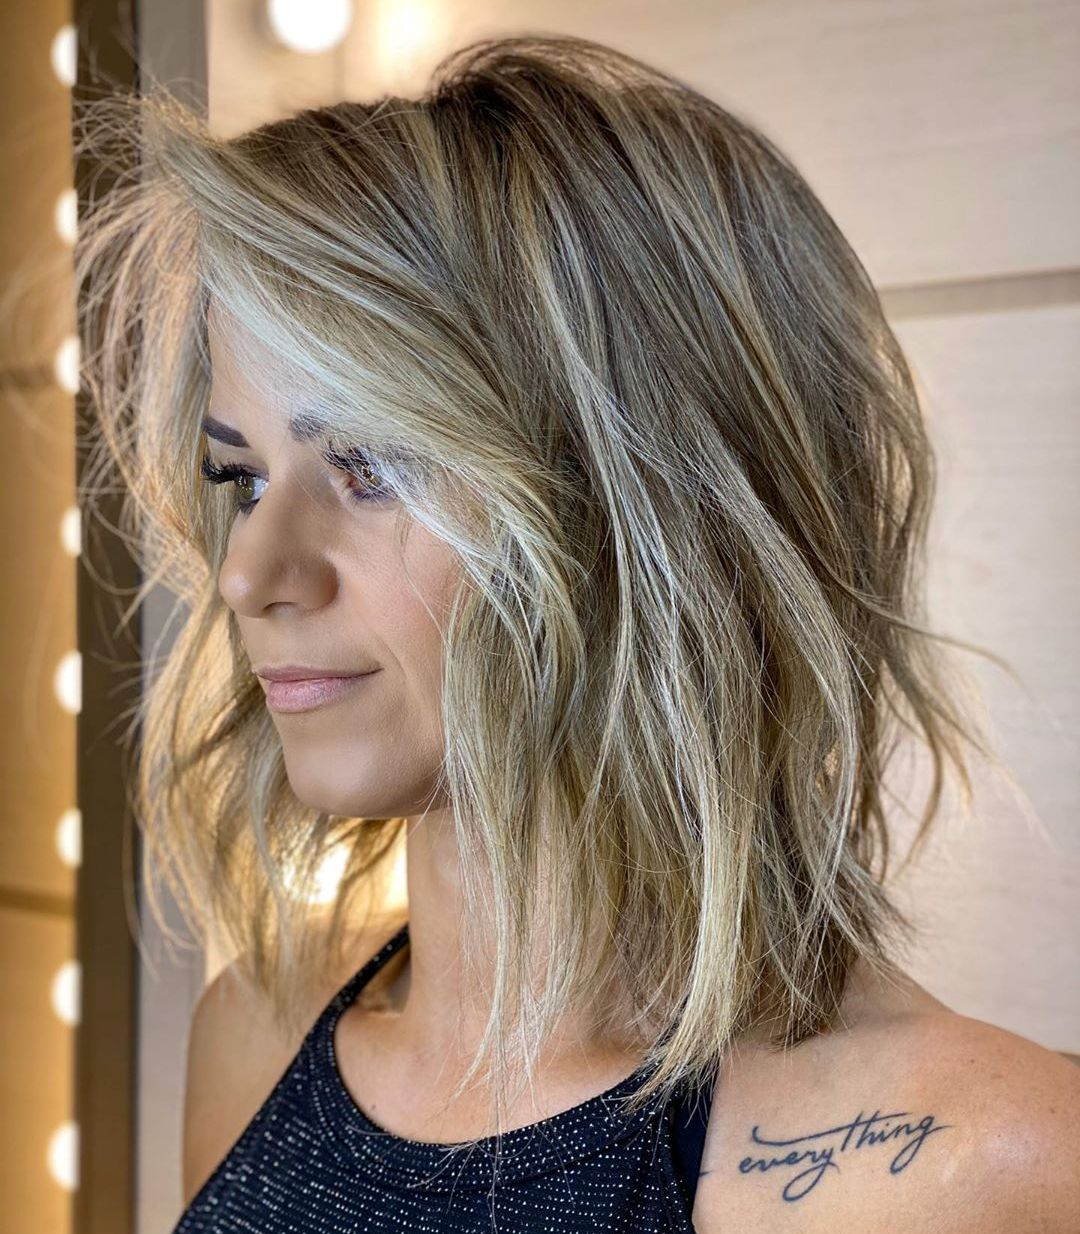 Latest Model Haircuts Trends For Womens 2020